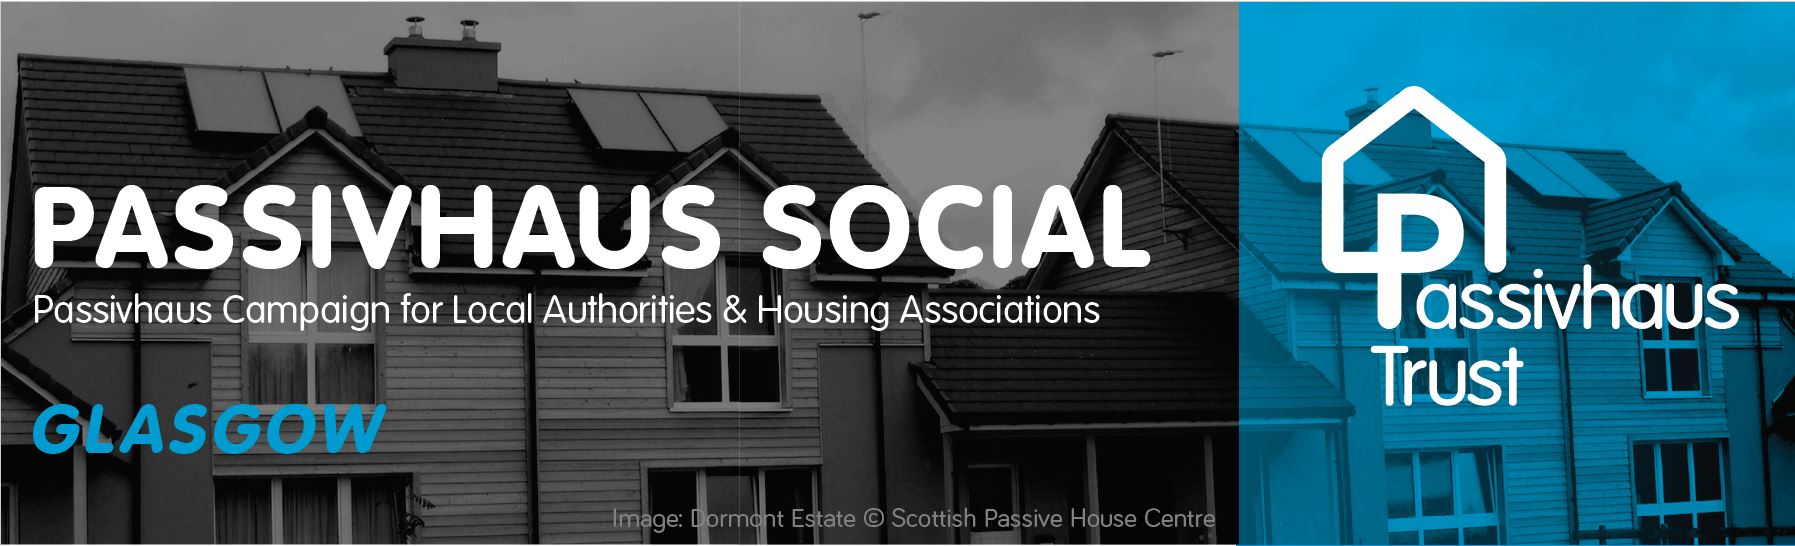 Passivhaus Social Glasgow: Developing Passivhaus for affordable housing and public buildings